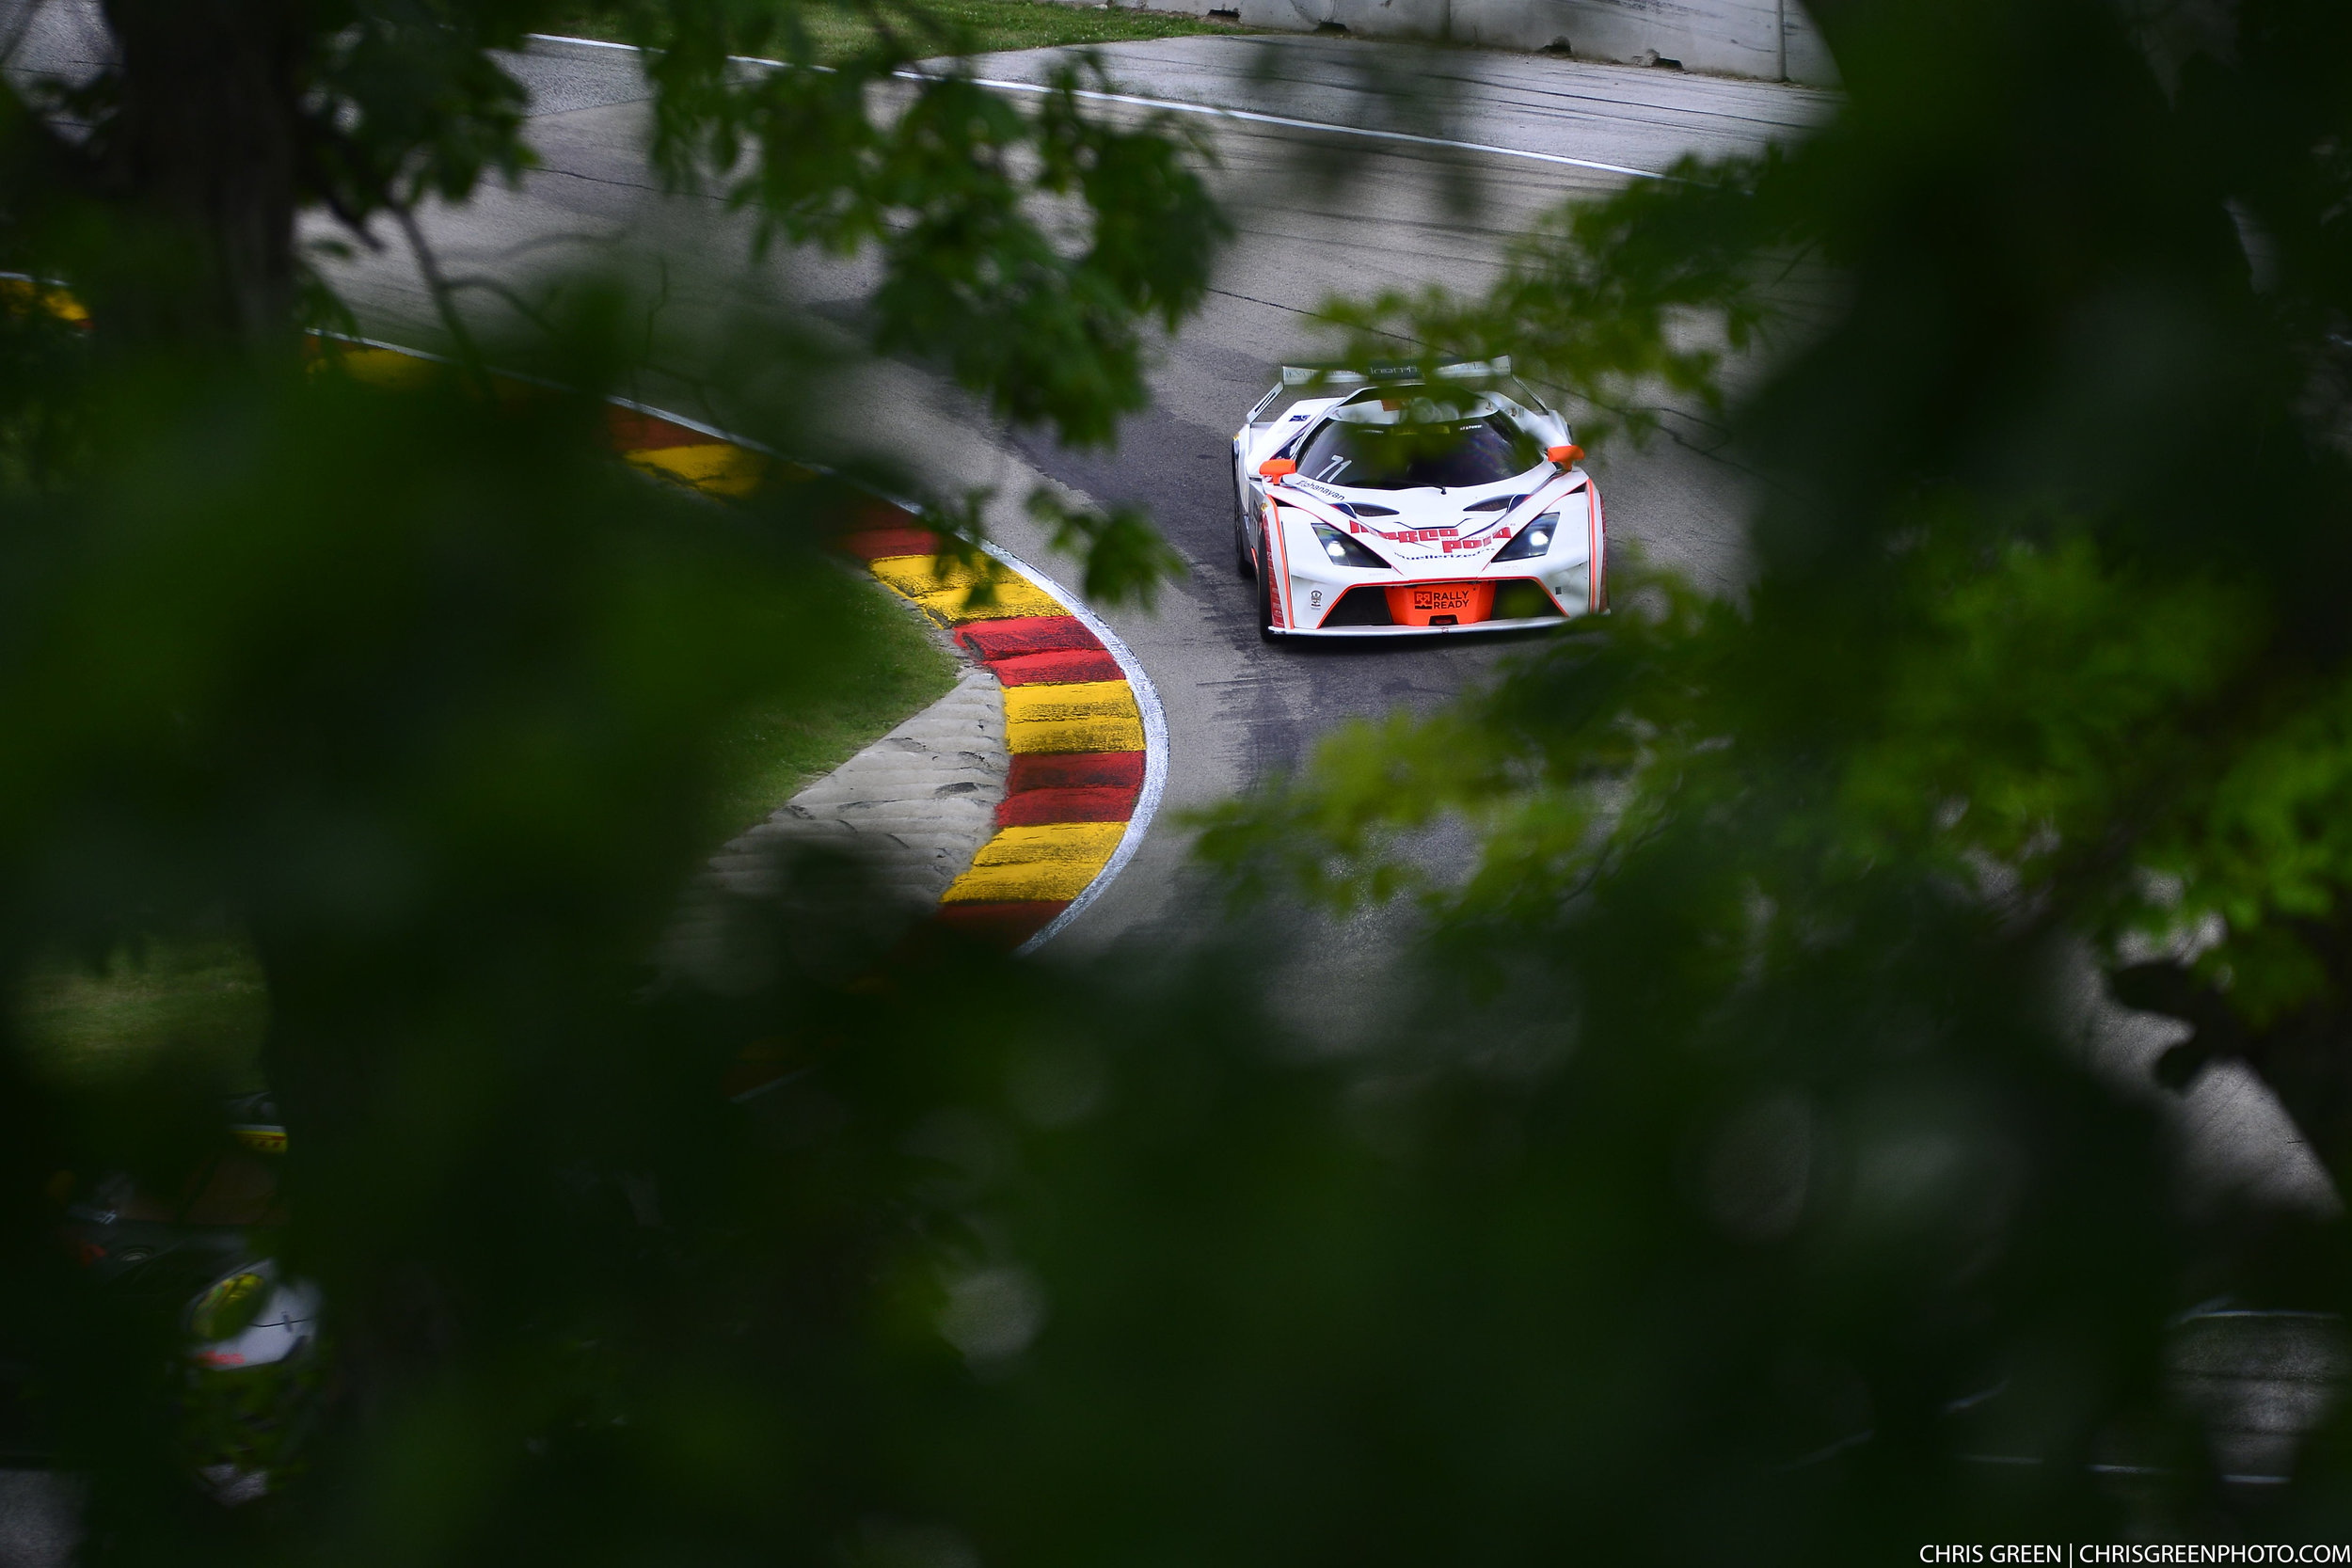 PWC Grand Prix of Road America